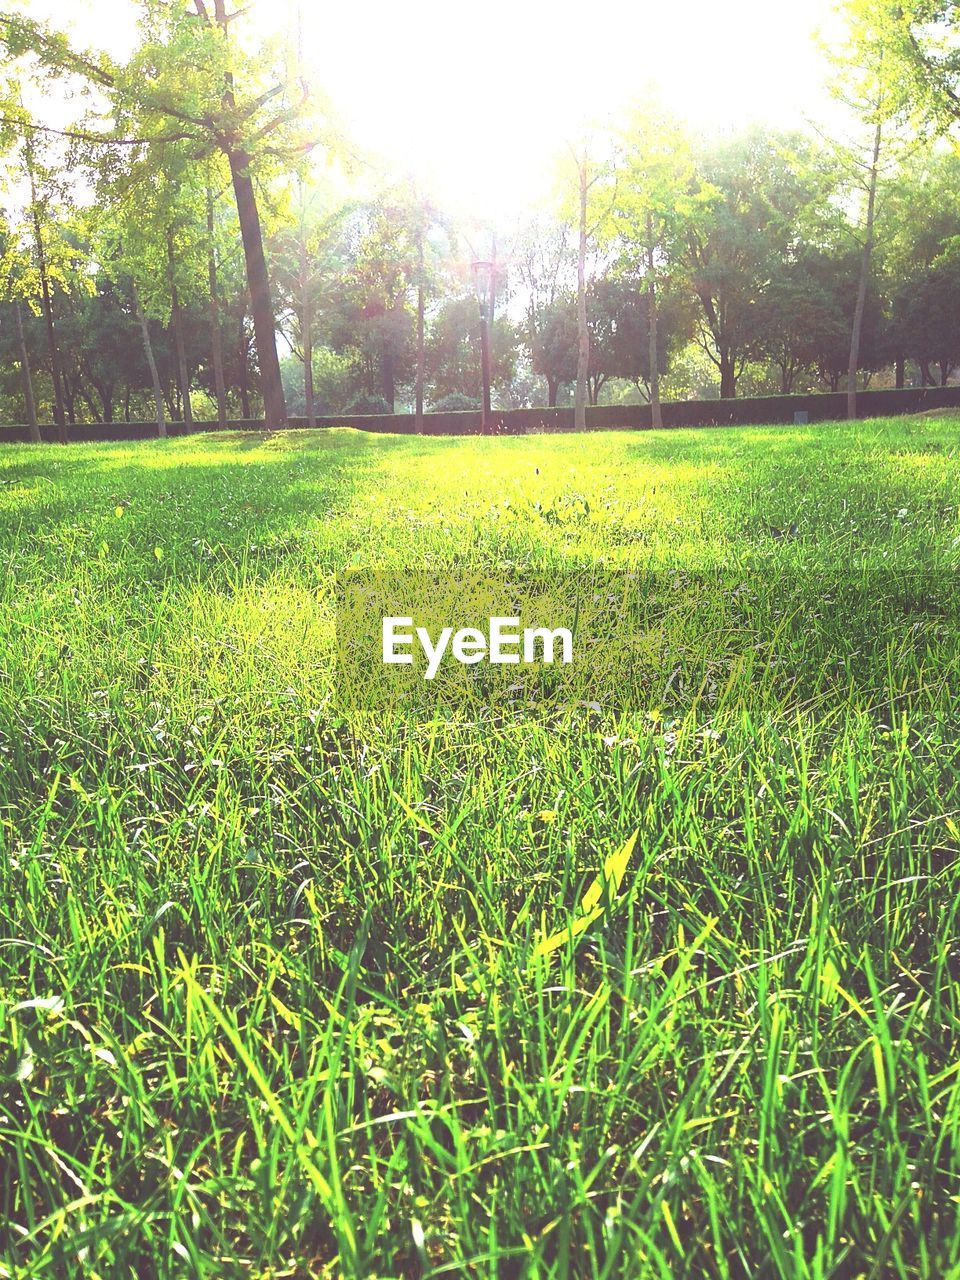 grass, nature, tranquility, beauty in nature, tranquil scene, field, green color, growth, tree, no people, day, sunlight, scenics, outdoors, landscape, freshness